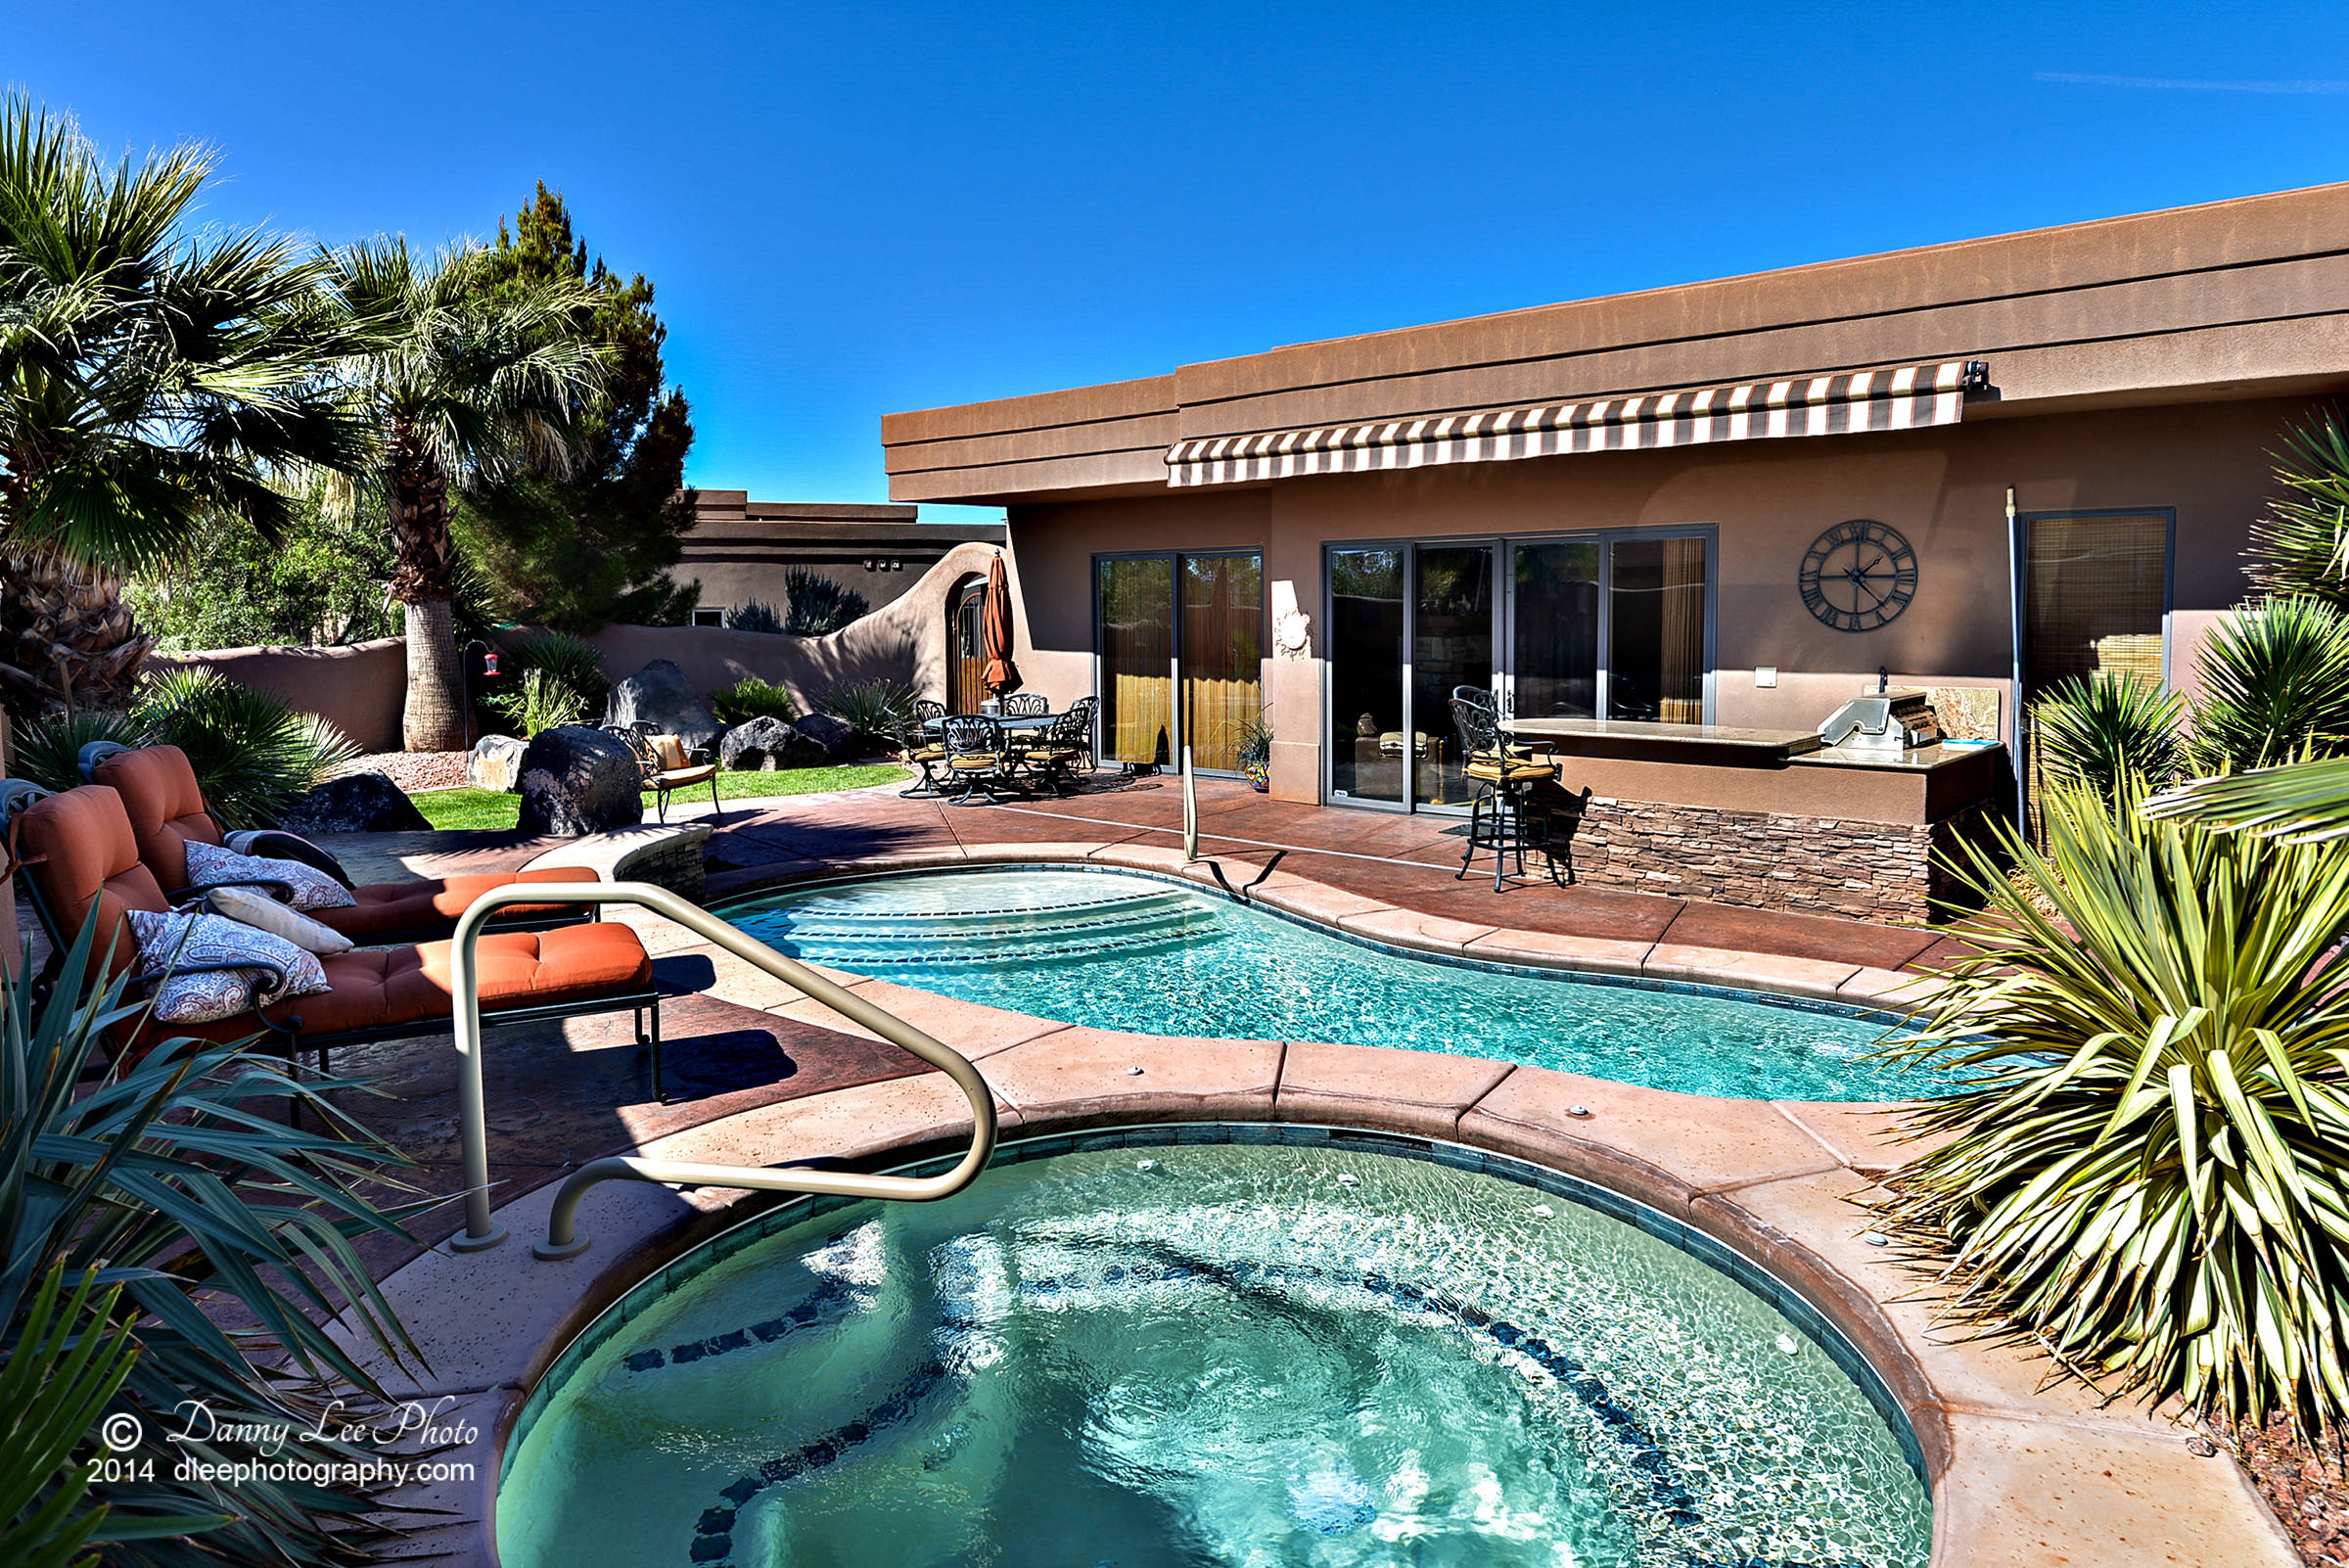 Snow Canyon Area Homes Of St George Utah